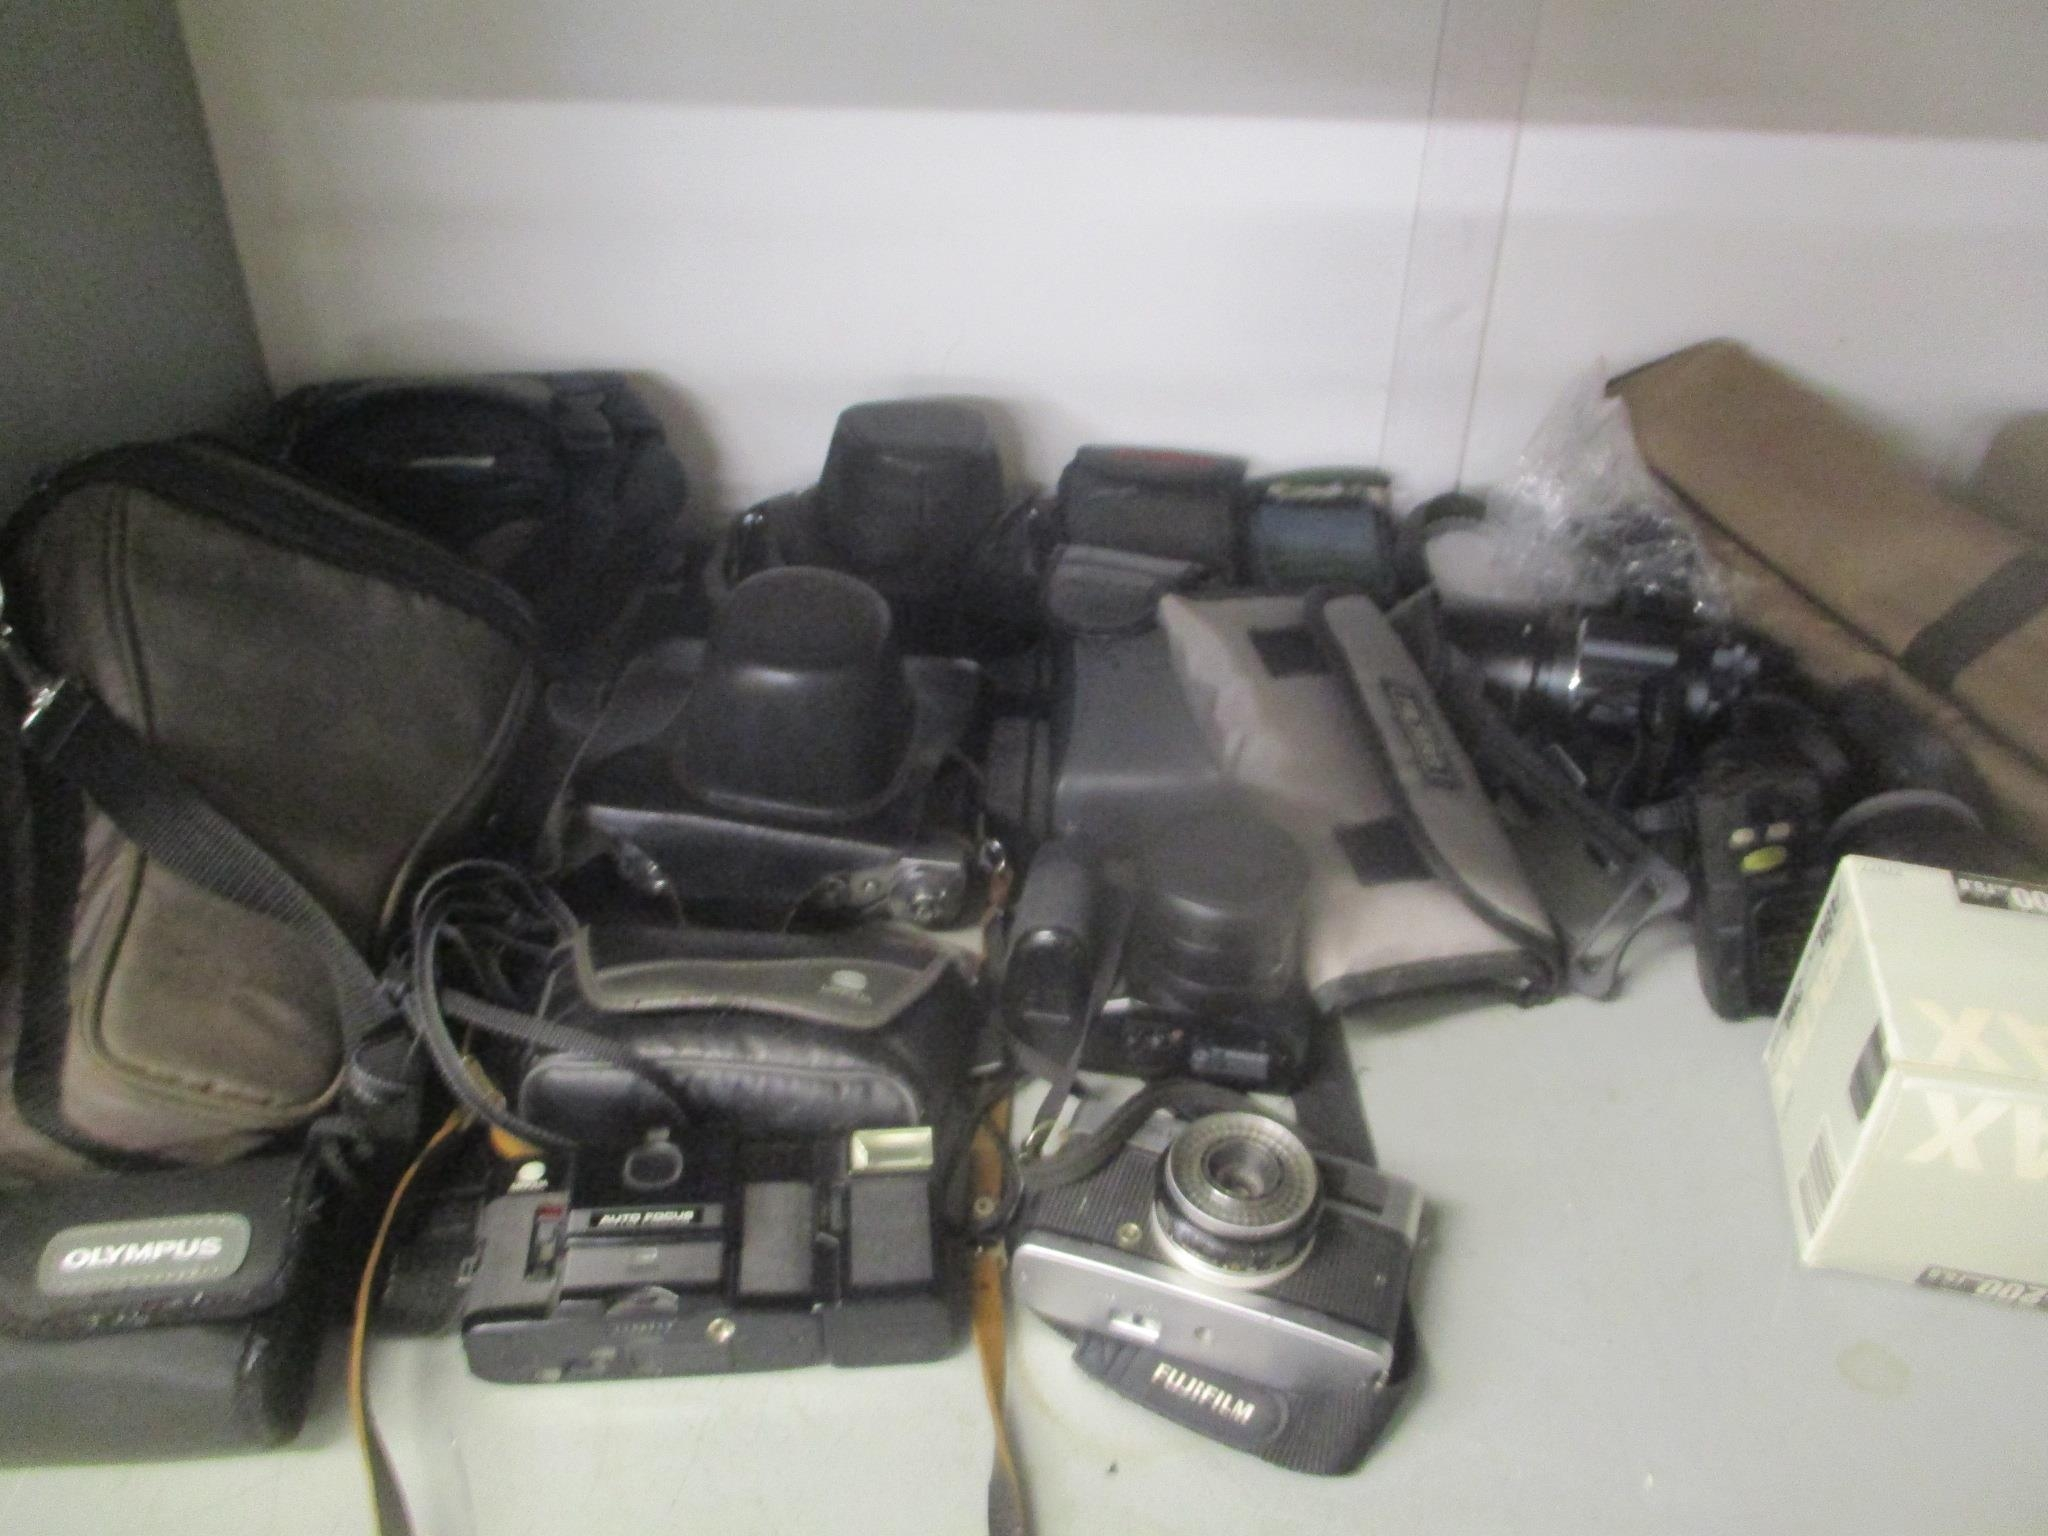 Various cameras, camera stand and camera filters together with a typewriter - Image 2 of 2